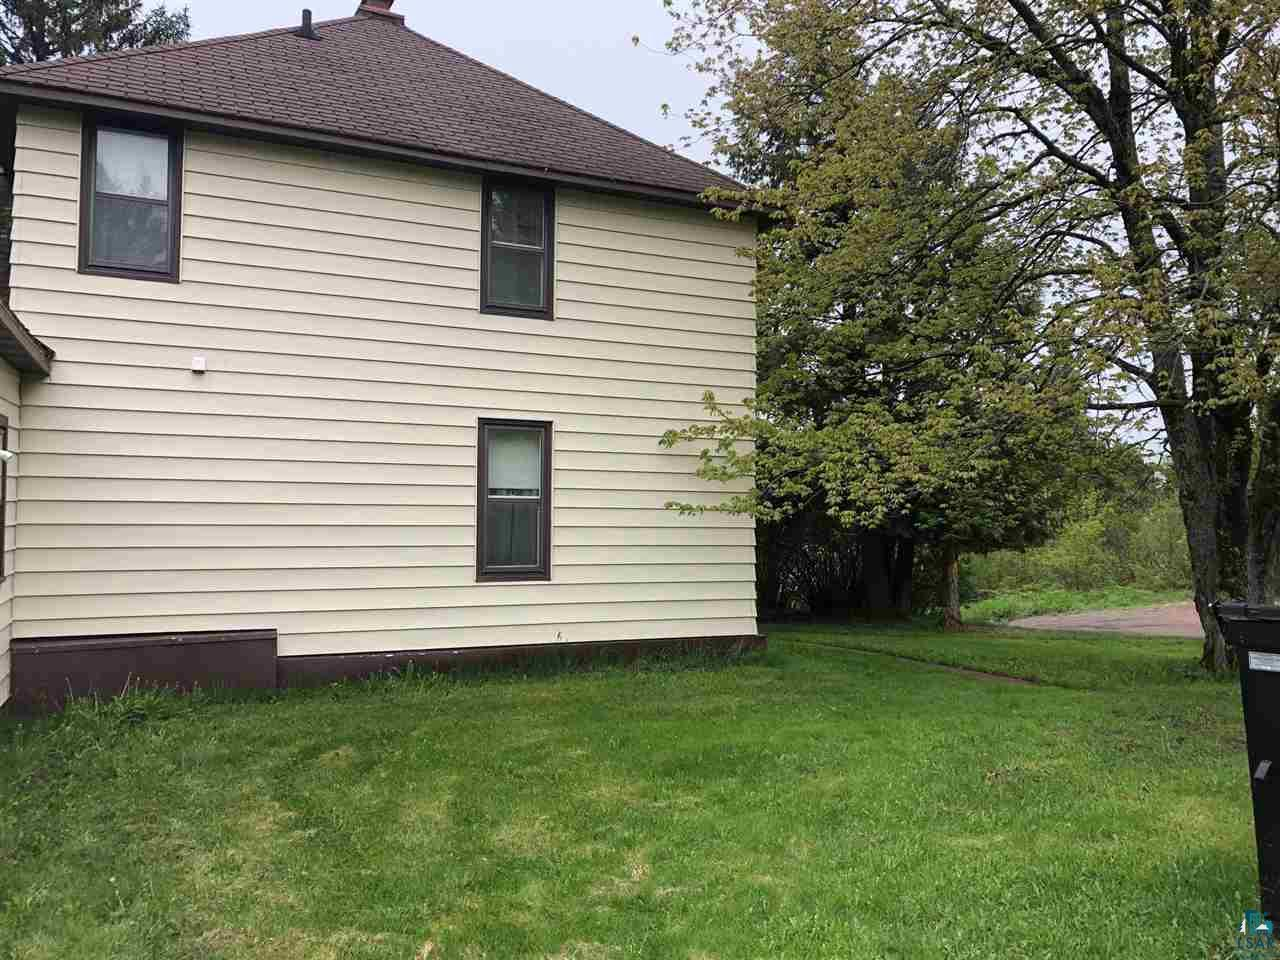 Large 4 bedroom, 1 bath home on nearly an acre lot  in Mellen.  There is plenty of room  for your new garage or use the home as income property.